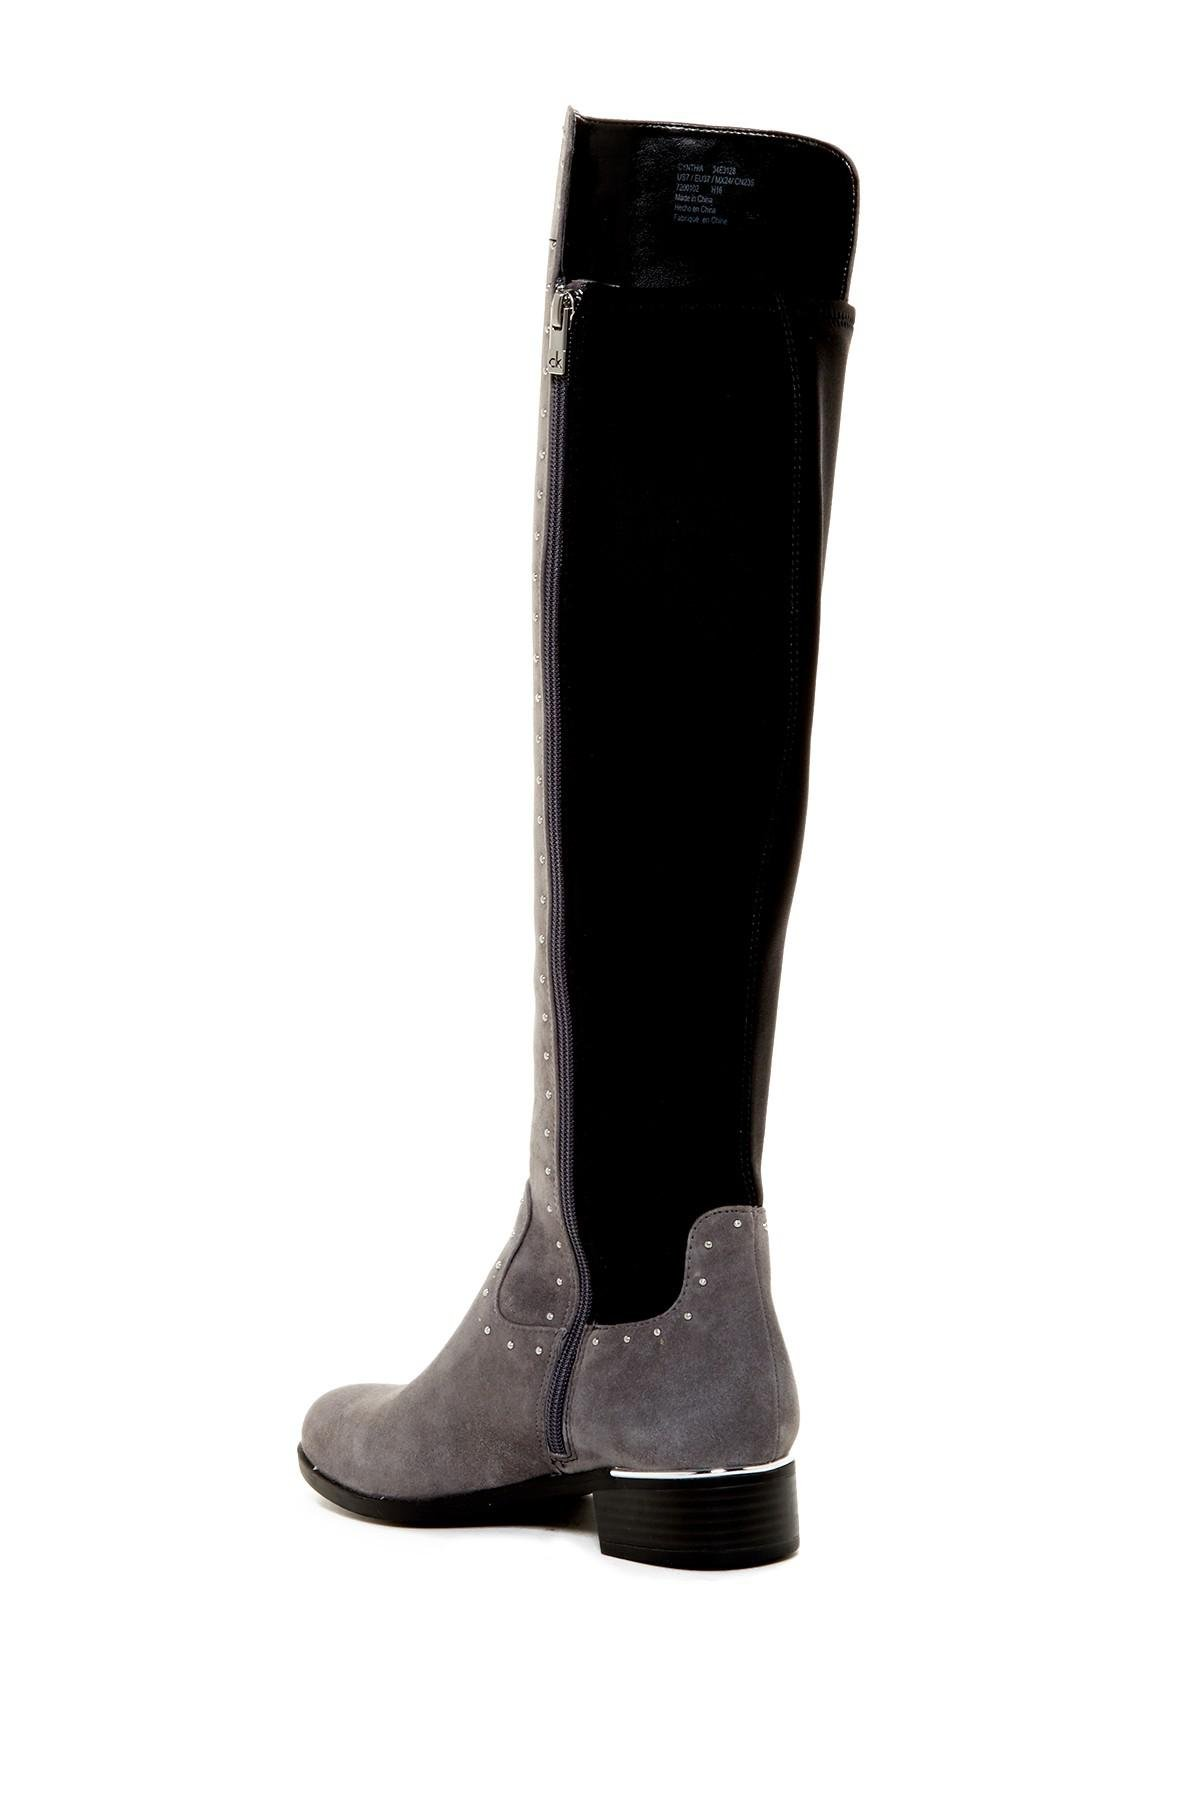 outlet store sale pretty cheap factory outlet Calvin Klein Leather Cynthia Studded Riding Boot - Wide Calf in ...